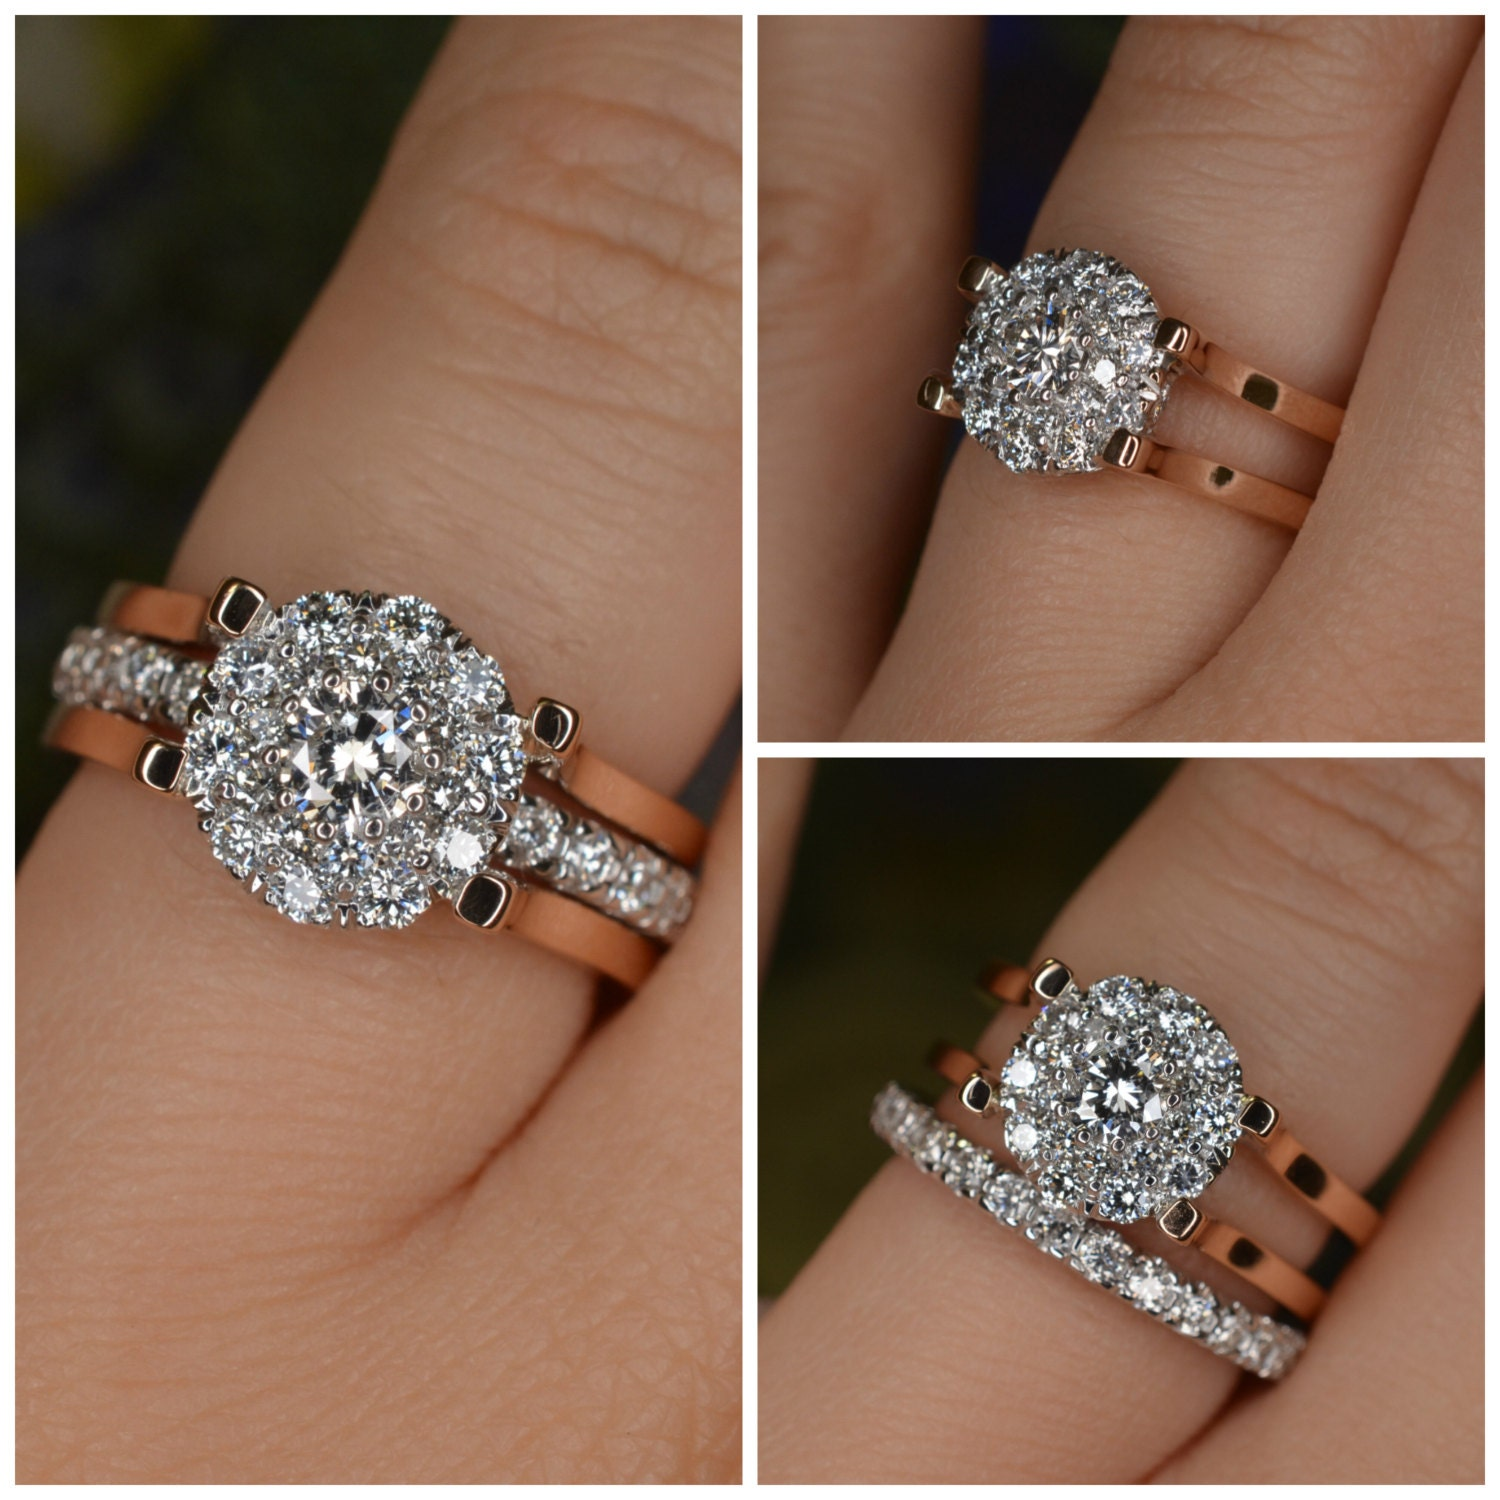 Insert Style Diamond Engagement Ring And Eternity Band Set